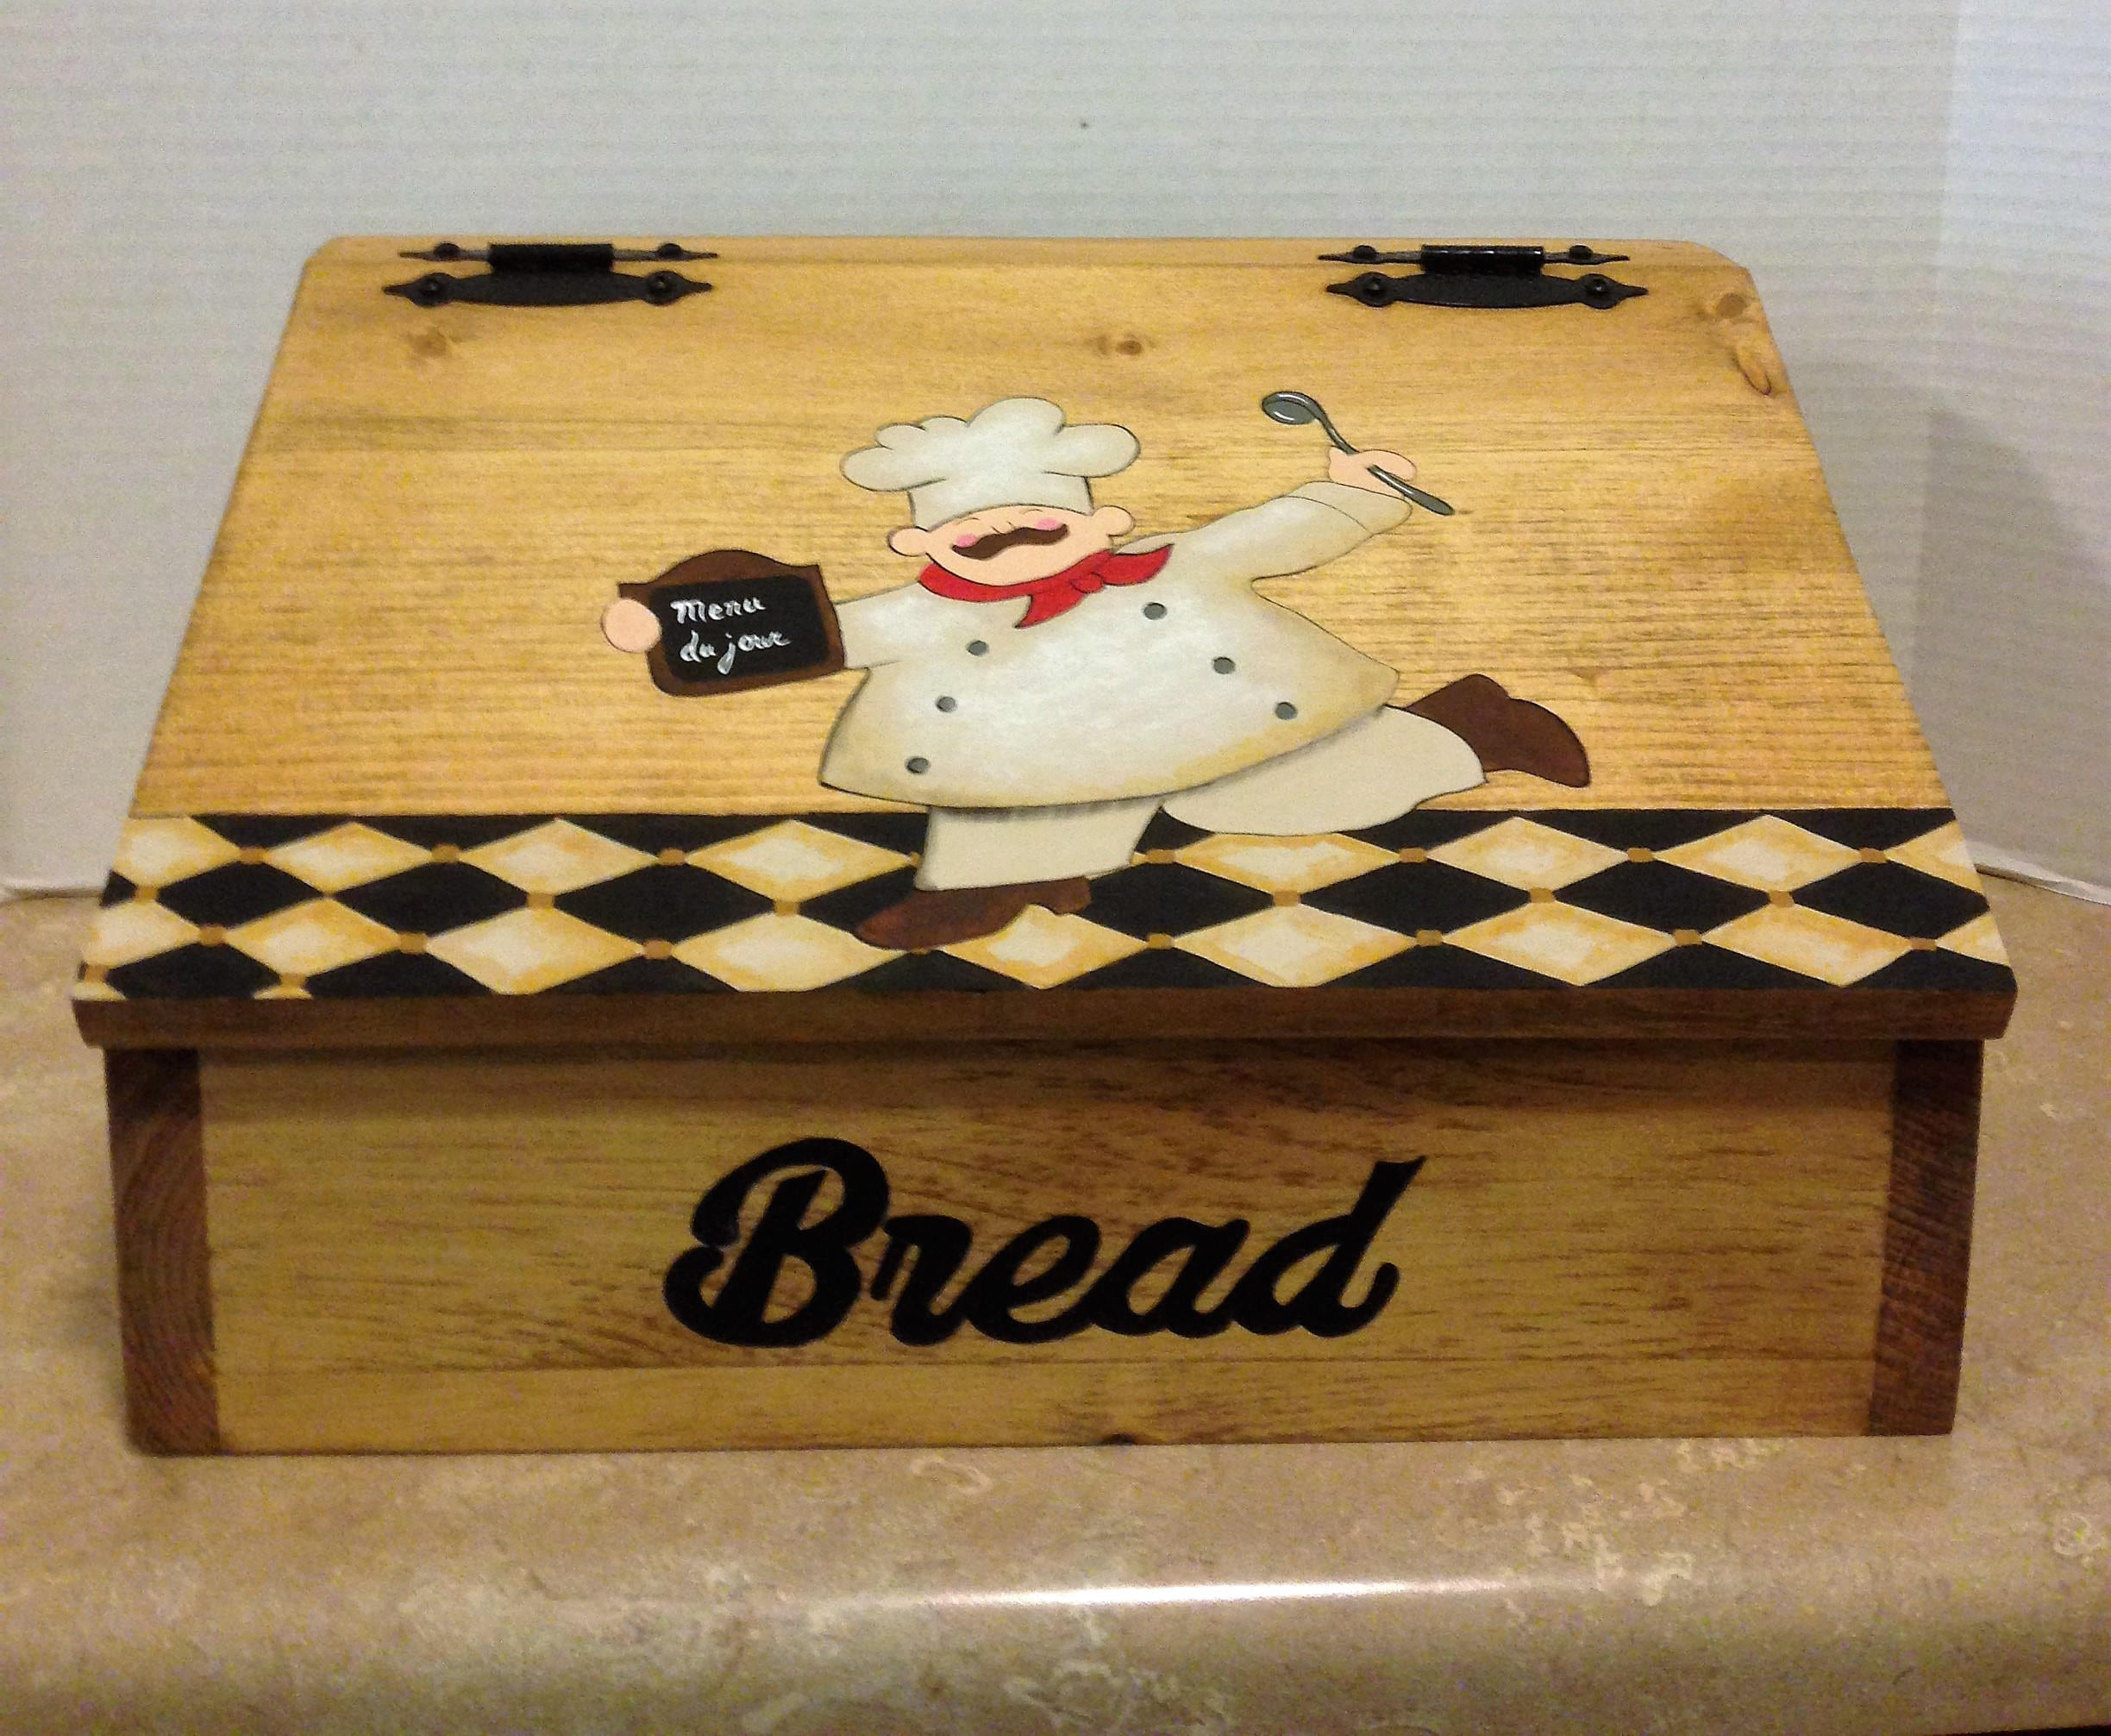 Bread Box Wooden Bread Box Chef Decor Chef Kitchen Decor